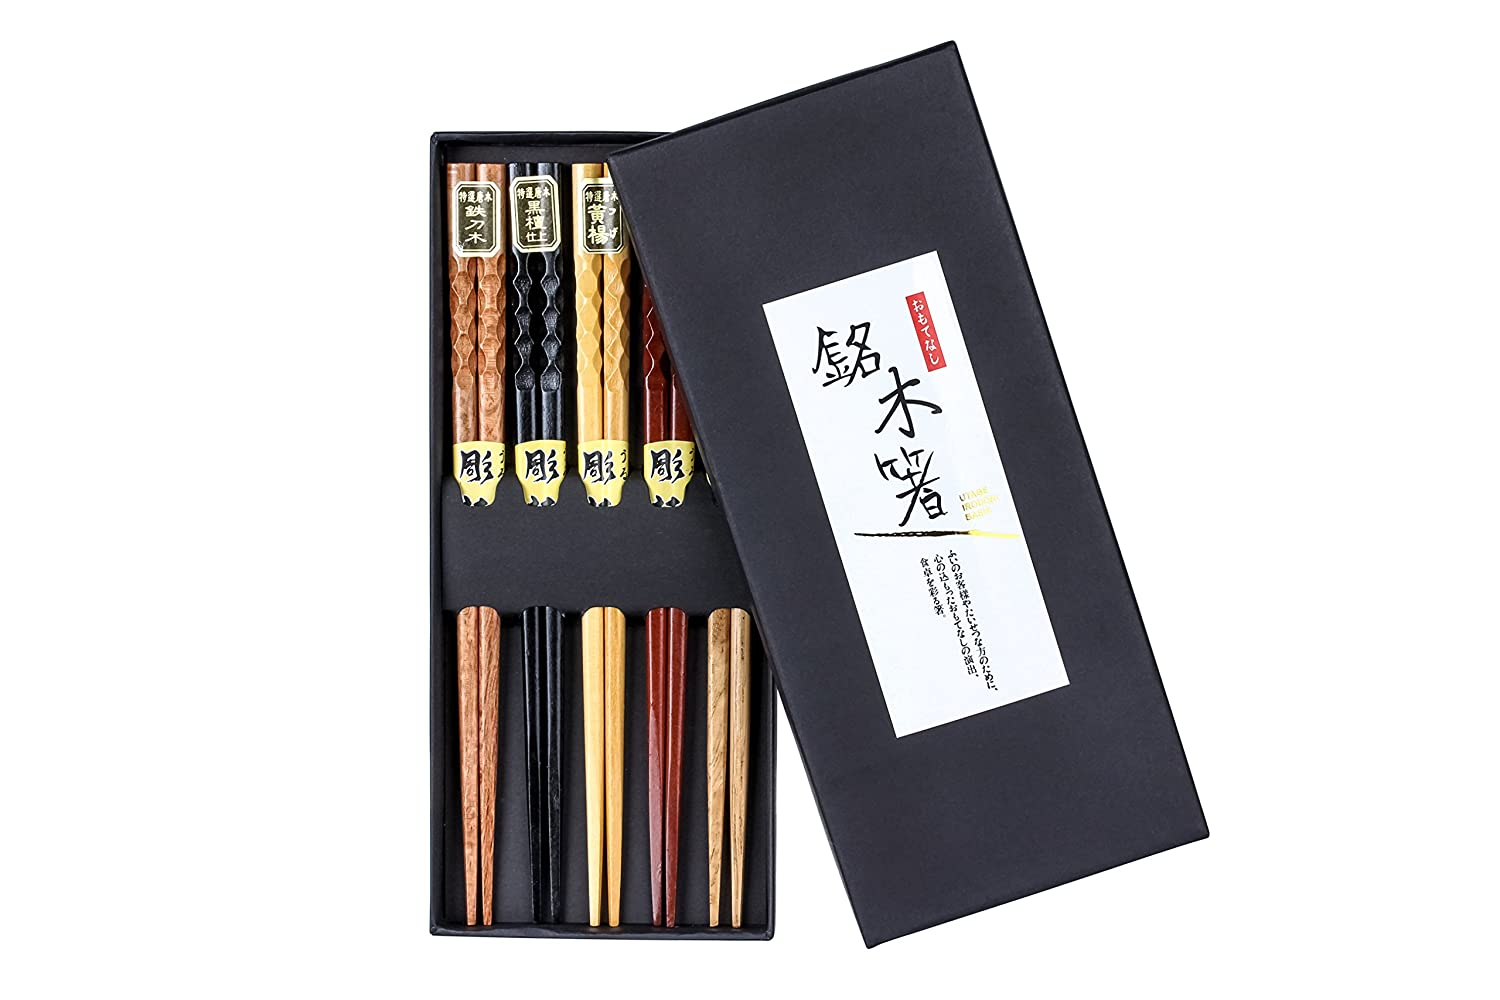 Heim Concept 5 Pair Organic Natural Hardwood Japanese Reusable Wood Chopsticks Assorted Color with Gift Box 16WCY-026